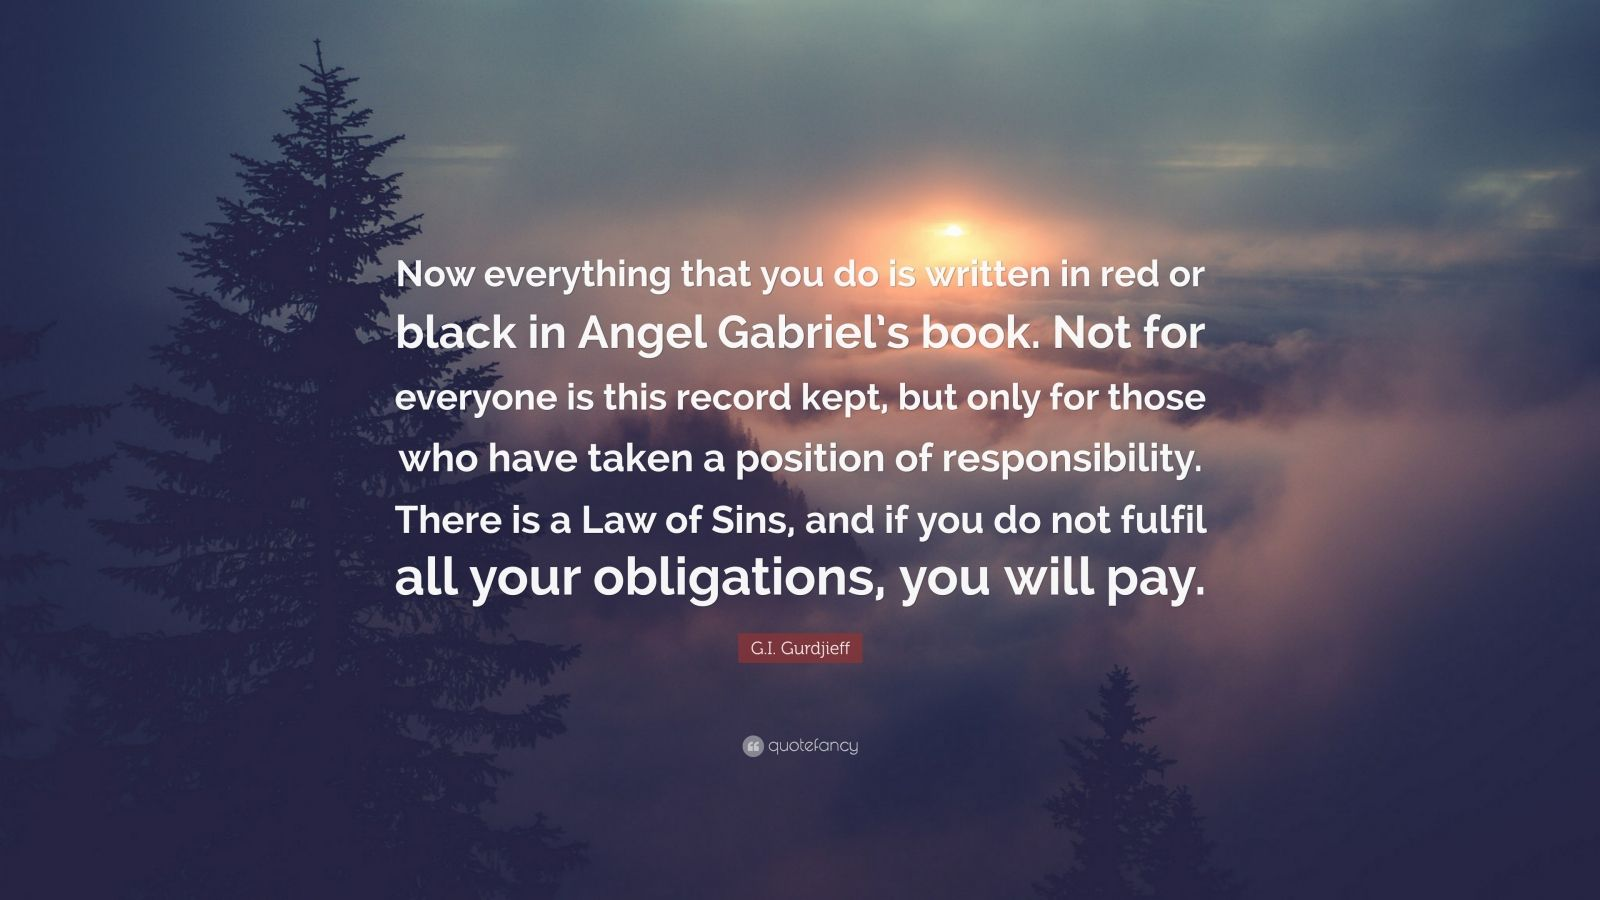 "G.I. Gurdjieff Quote: ""Now everything that you do is written in red or black in Angel Gabriel's book. Not for everyone is this record kept, but only for those who have taken a position of responsibility. There is a Law of Sins, and if you do not fulfil all your obligations, you will pay."""